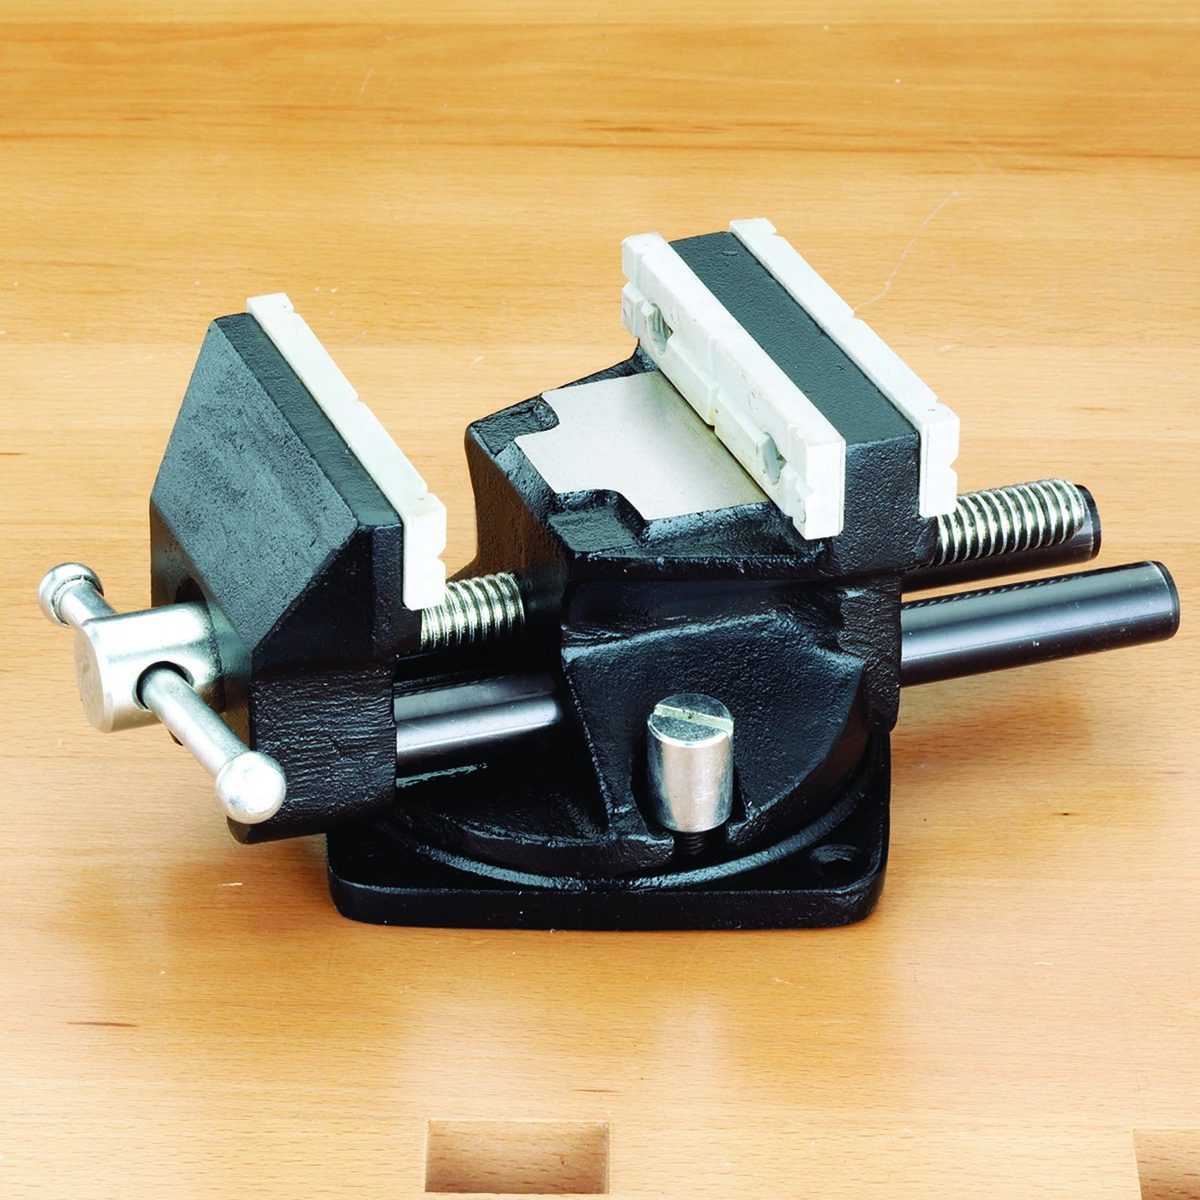 Groz Vise Review